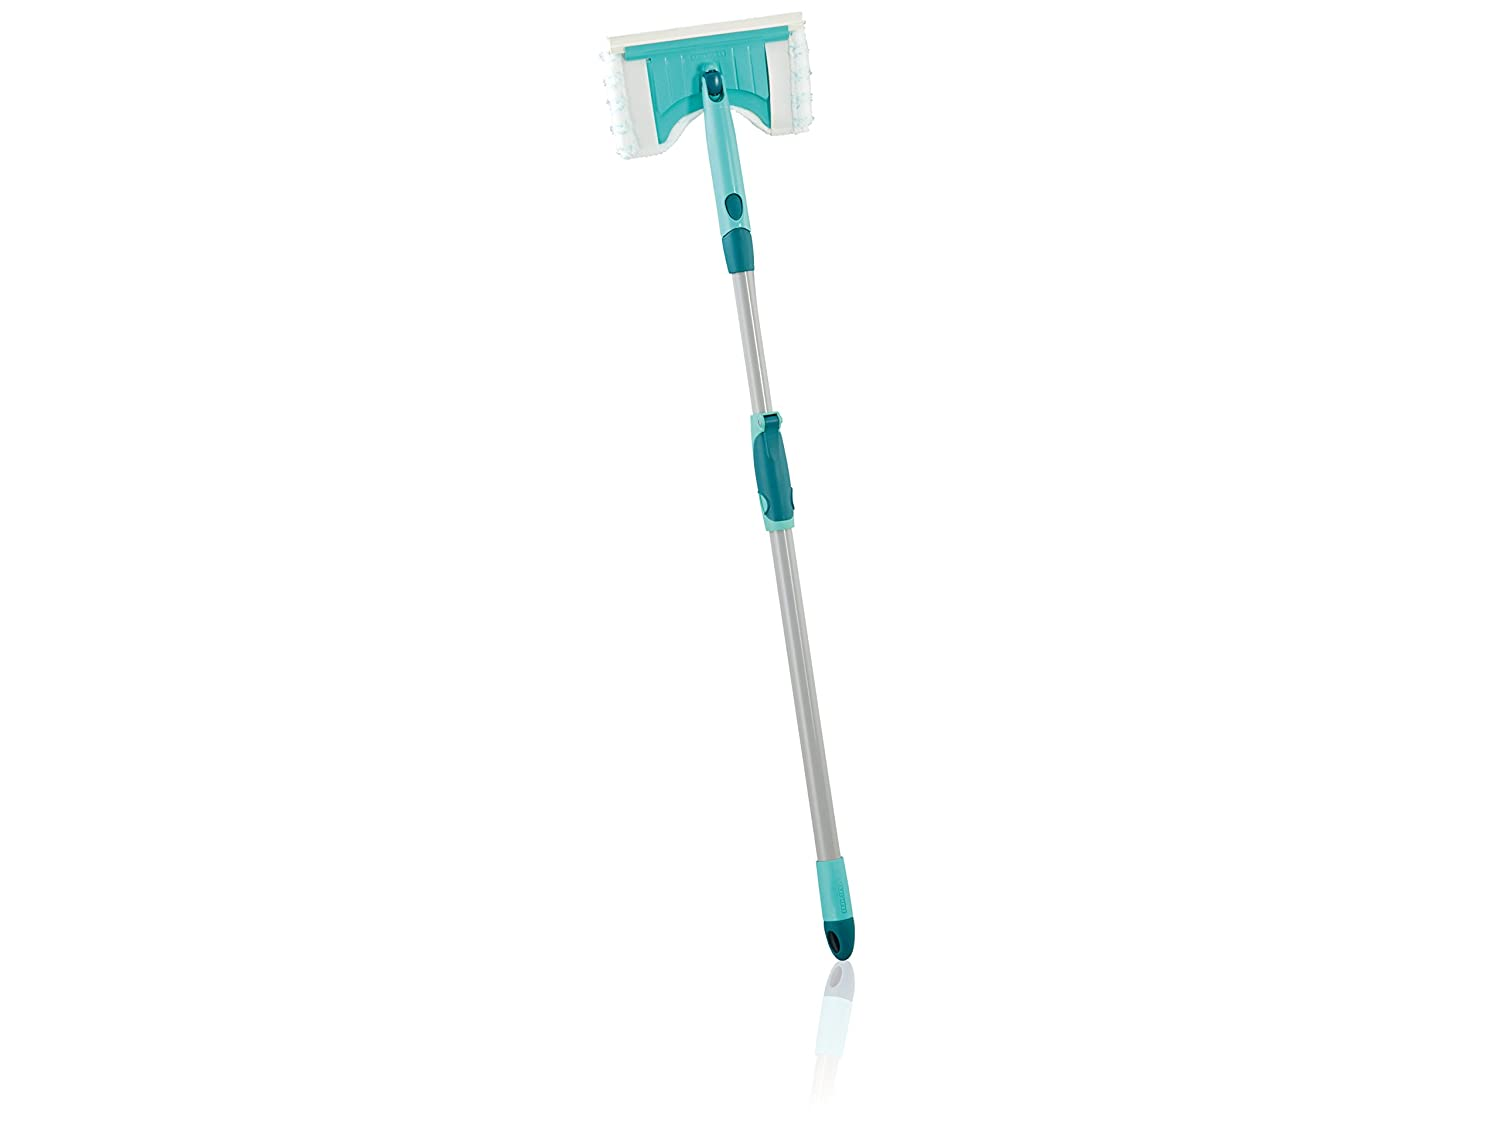 Leifheit Tile and Bath Wiper Flexi Pad Telescopic Handle 41700